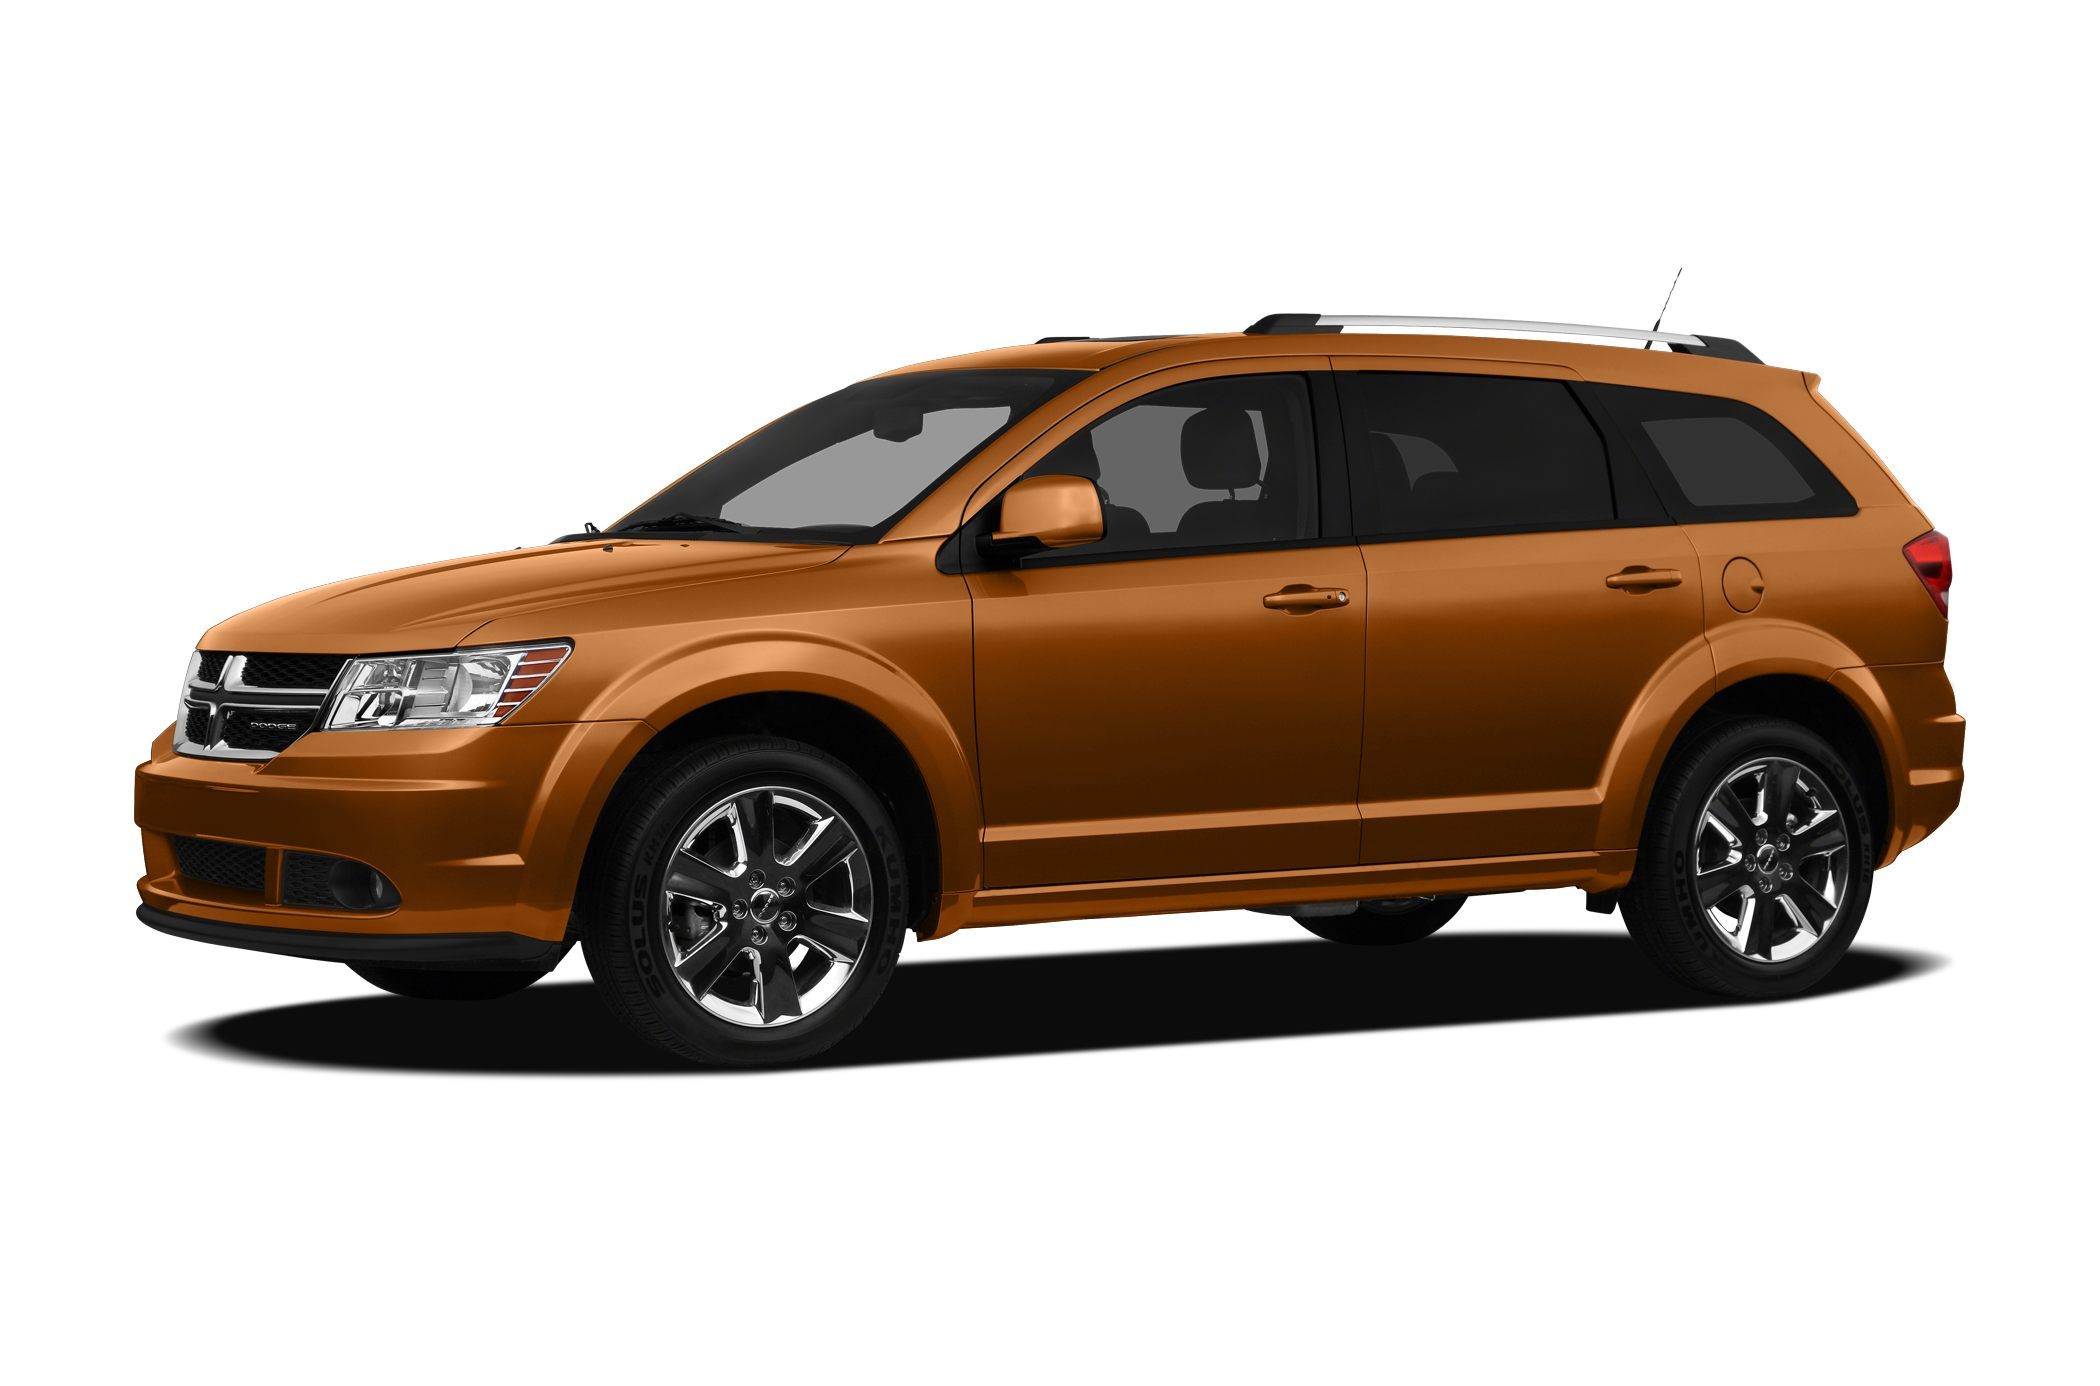 2012 Dodge Journey SXT SUV for sale in Celina for $17,641 with 22,982 miles.